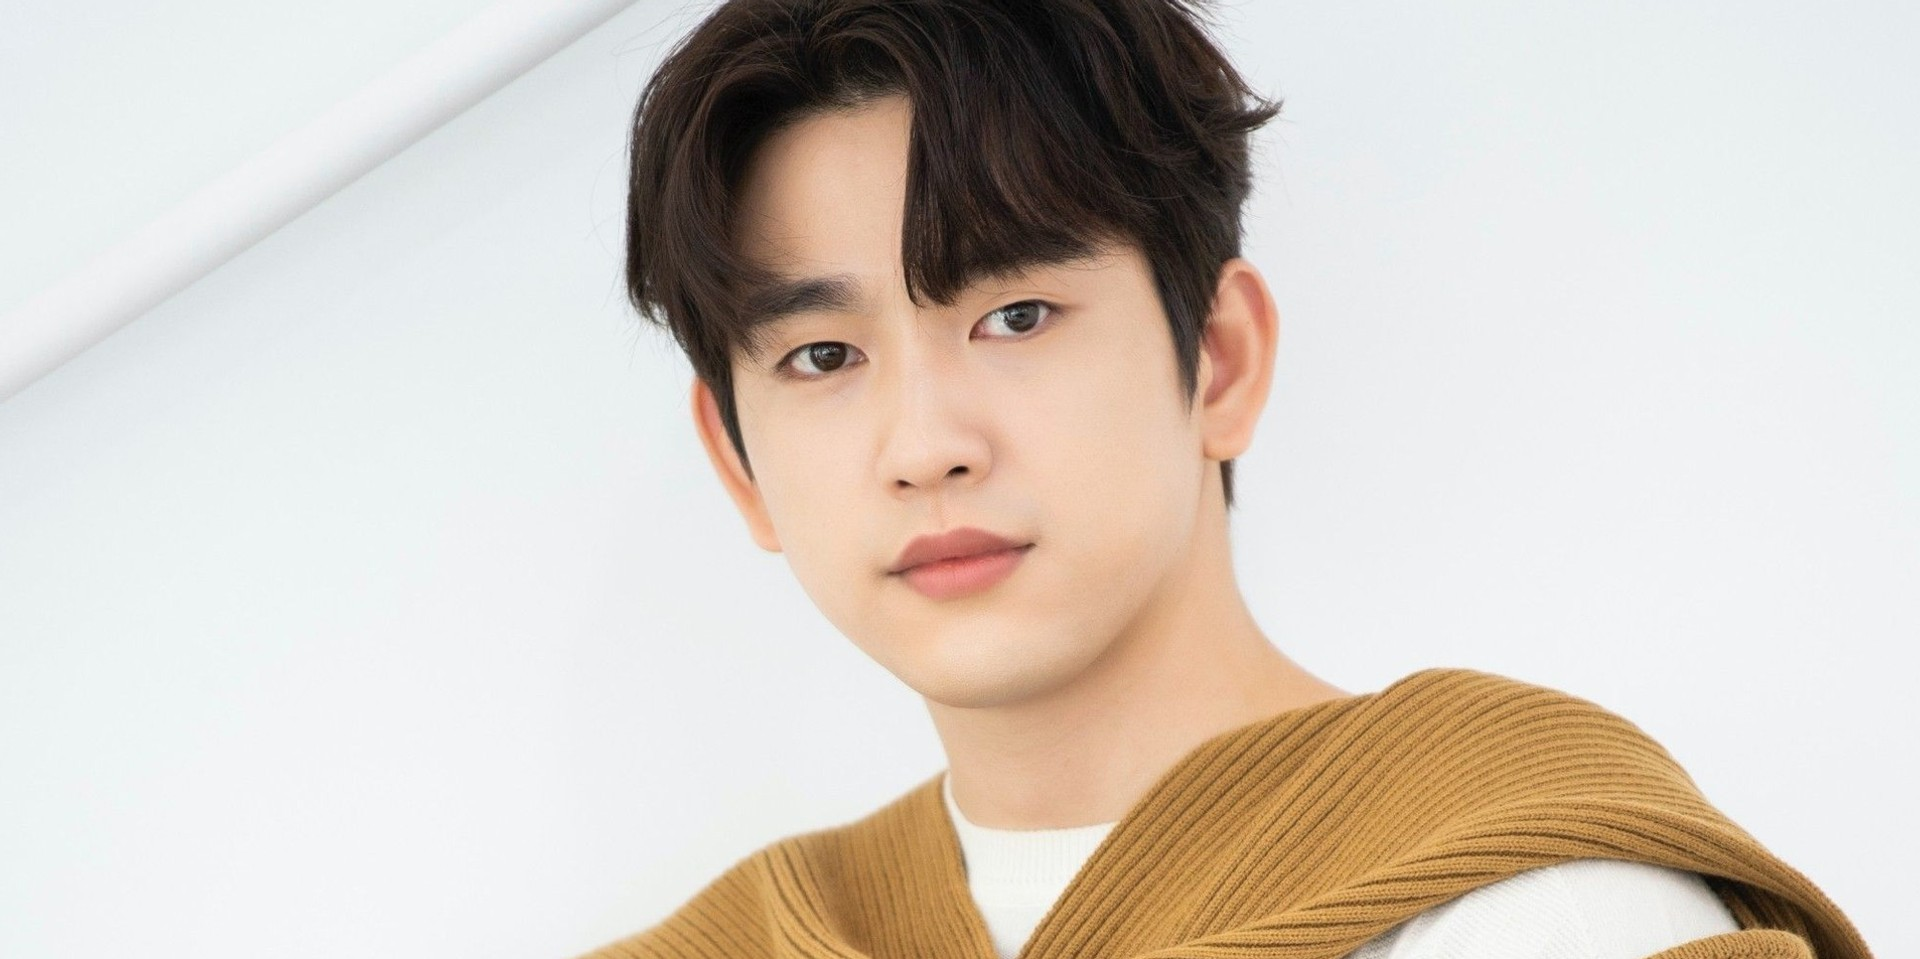 GOT7's Jinyoung drops surprise single and music video, 'DIVE' – watch